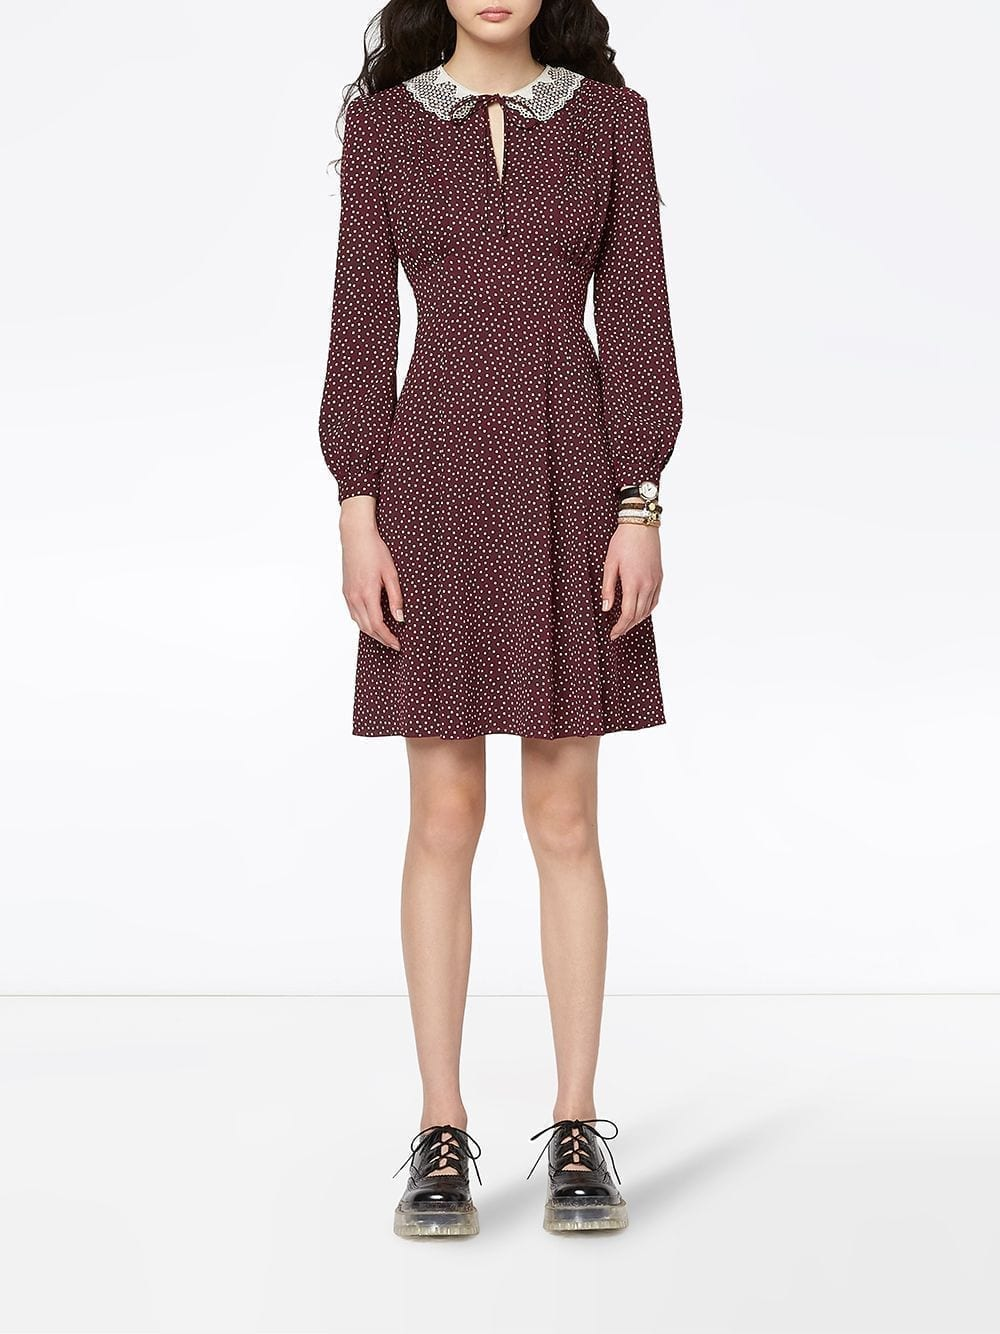 MARC JACOBS The Berlin Dress